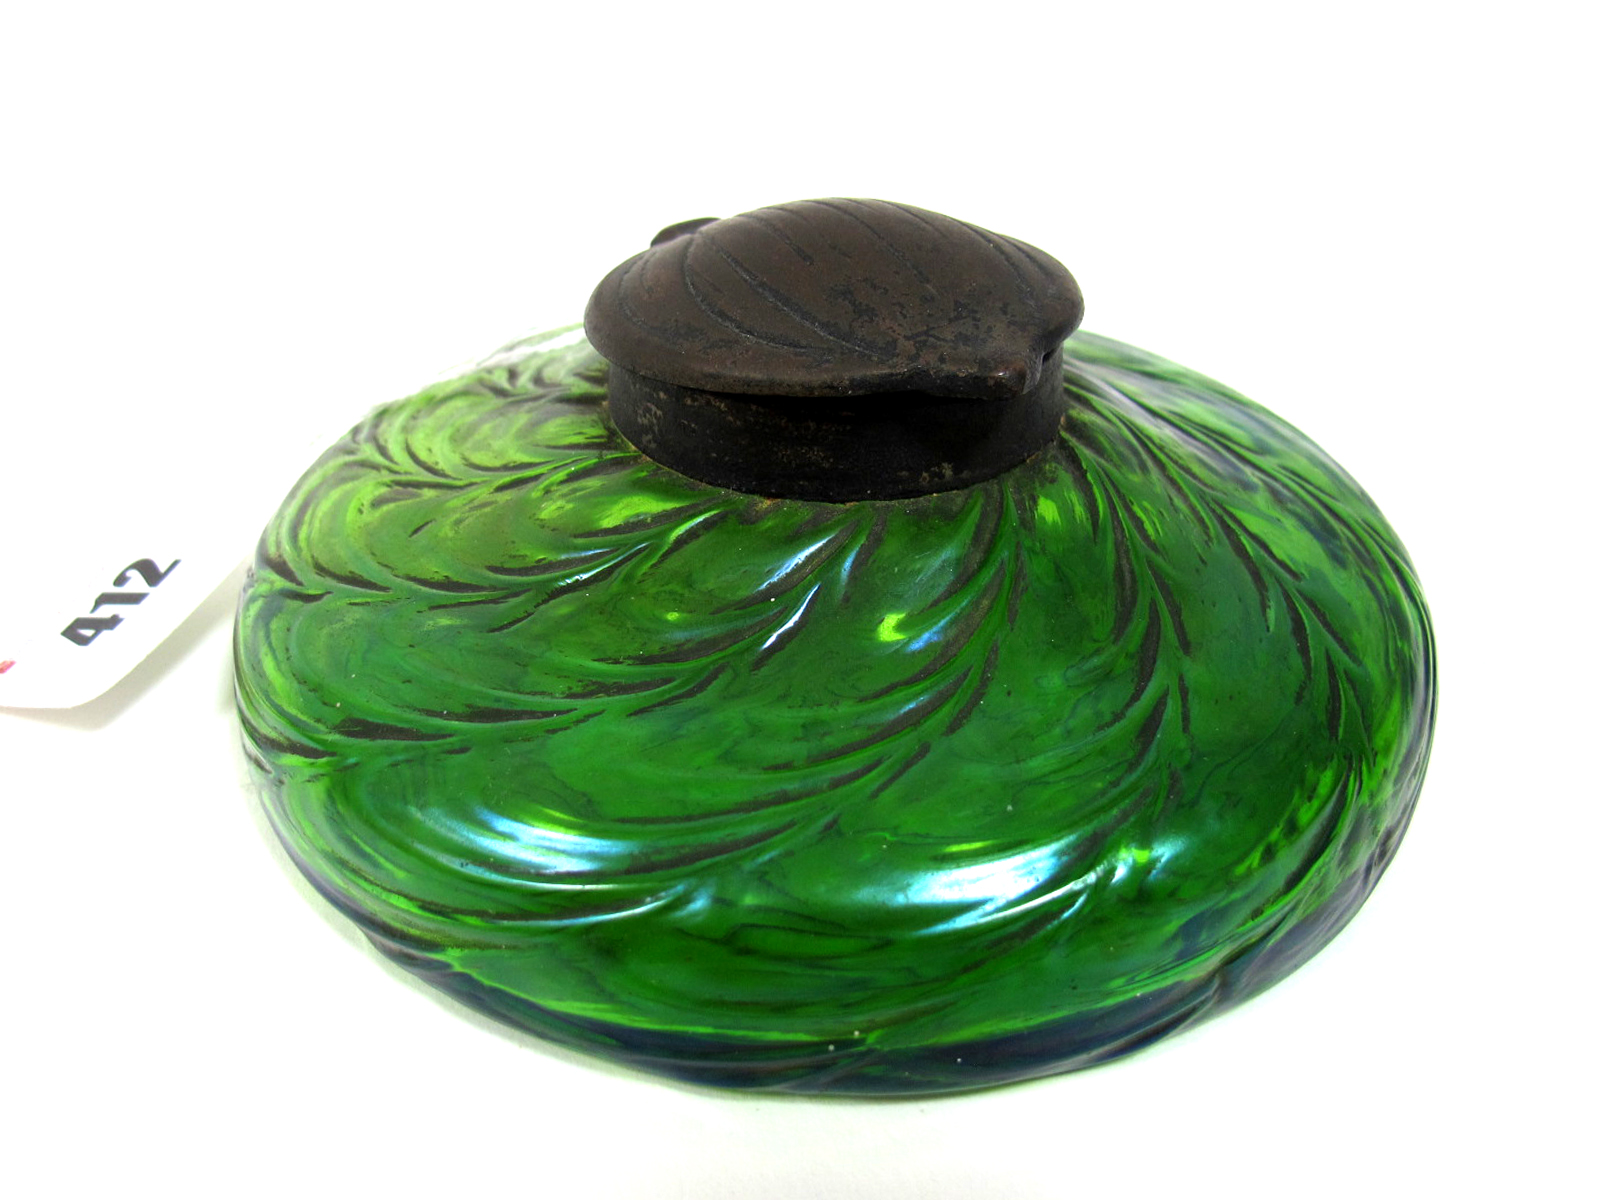 Lot 412 - An Early XX Century Irridescent Green Glass Inkwell in the Loetz Style, of squat circular form